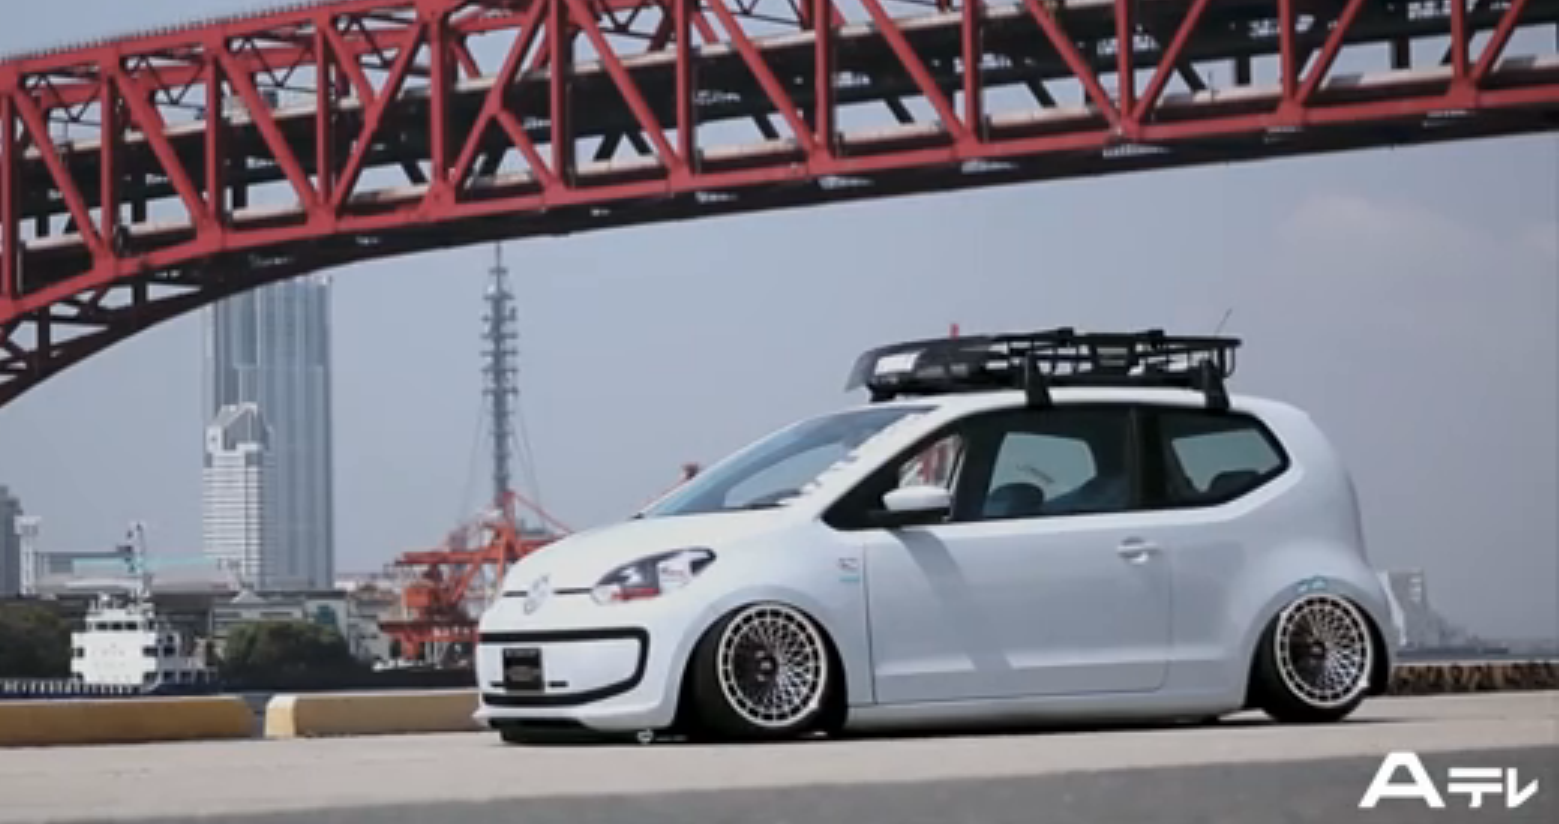 Volkswagen Cars - News: up! bagged with Porsche bits